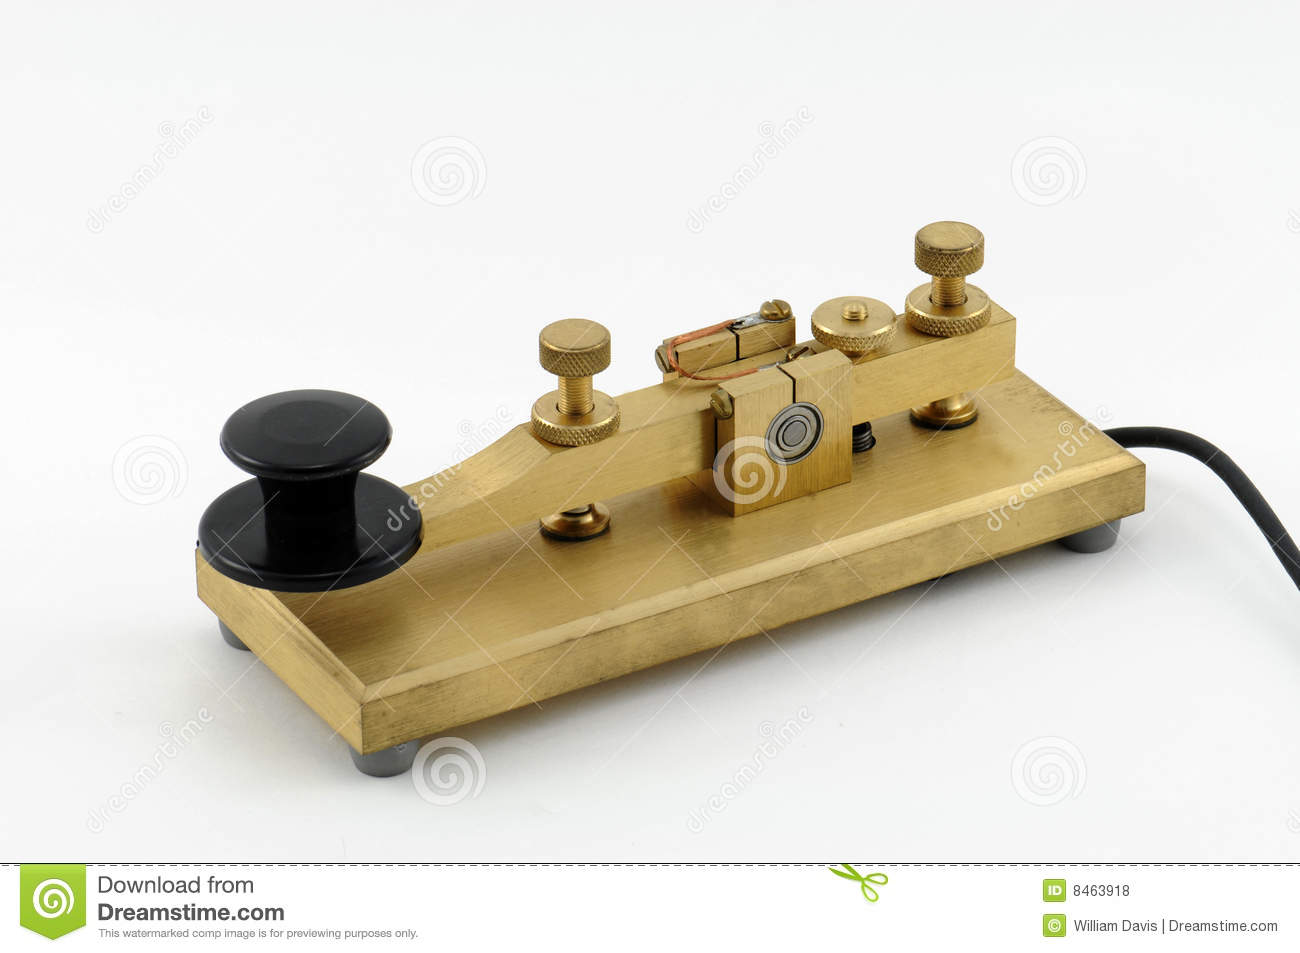 Telegraph Key - 3 stock photo  Image of knob, quality - 8463918